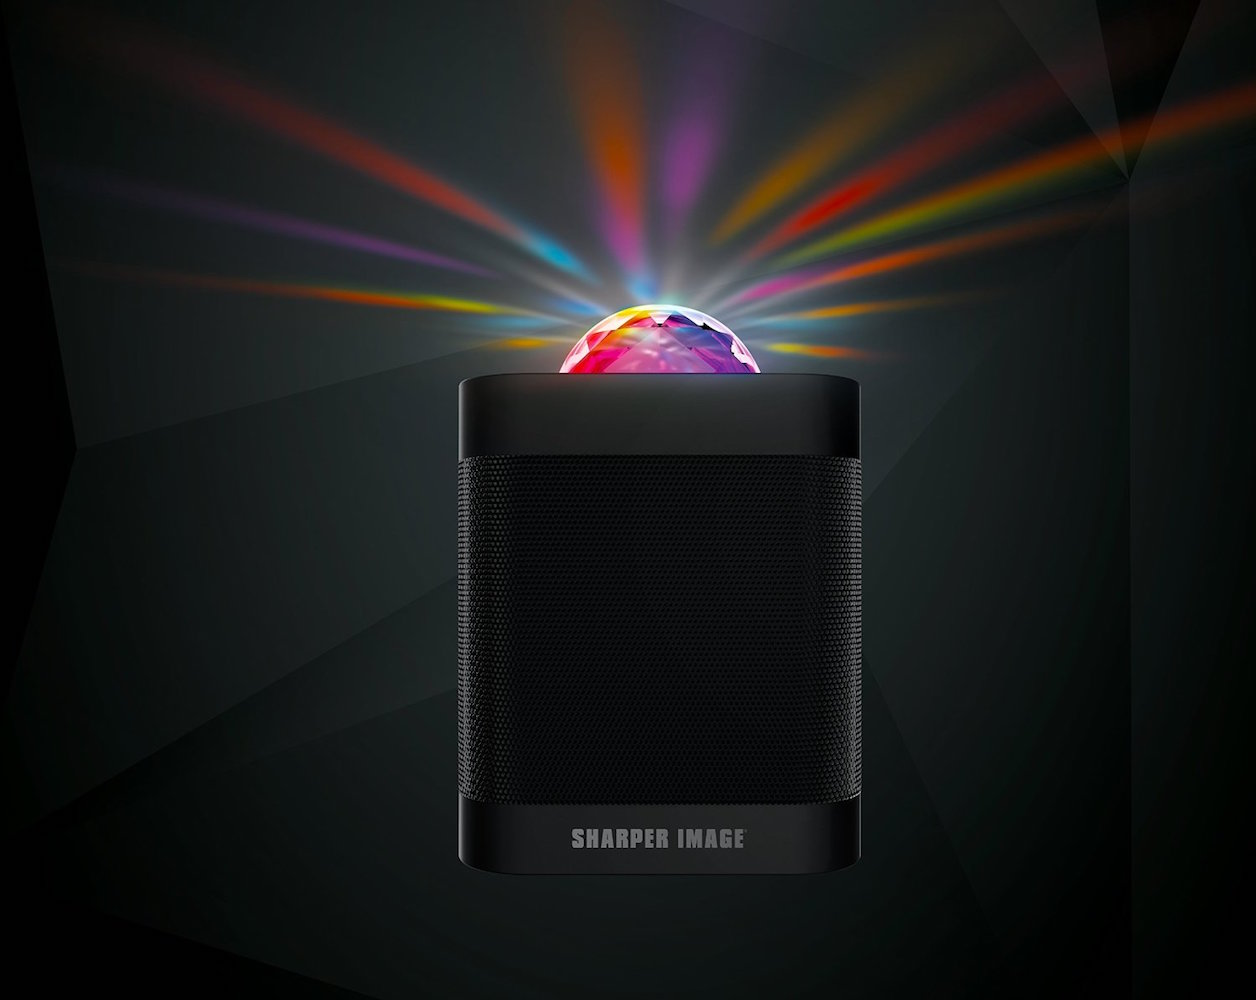 Bluetooth Speaker With Led Light Show From Sharper Image Gadget Flow